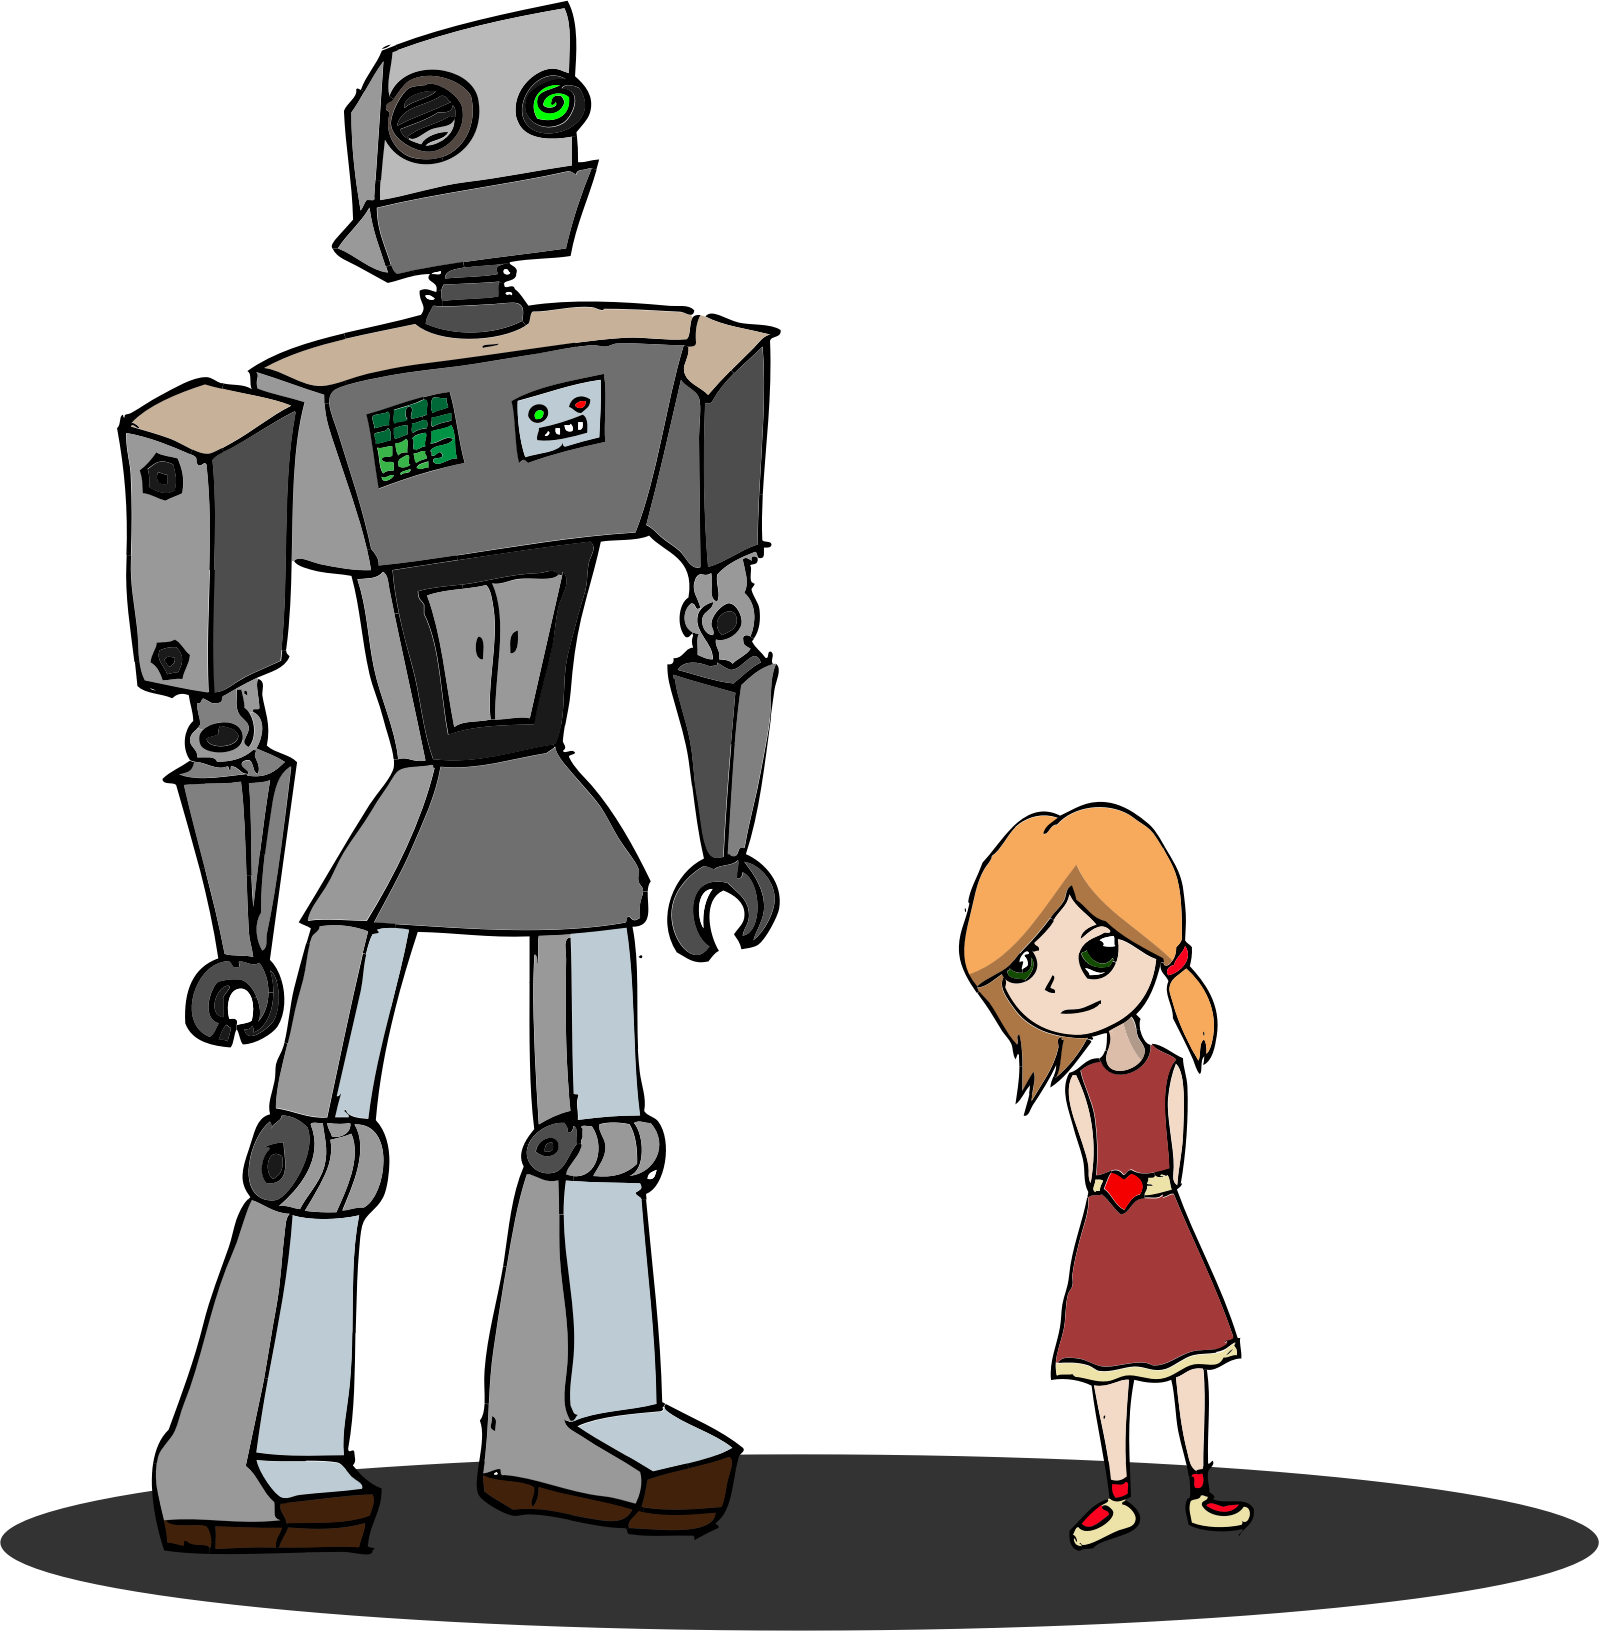 Girl And Robot by GDJ